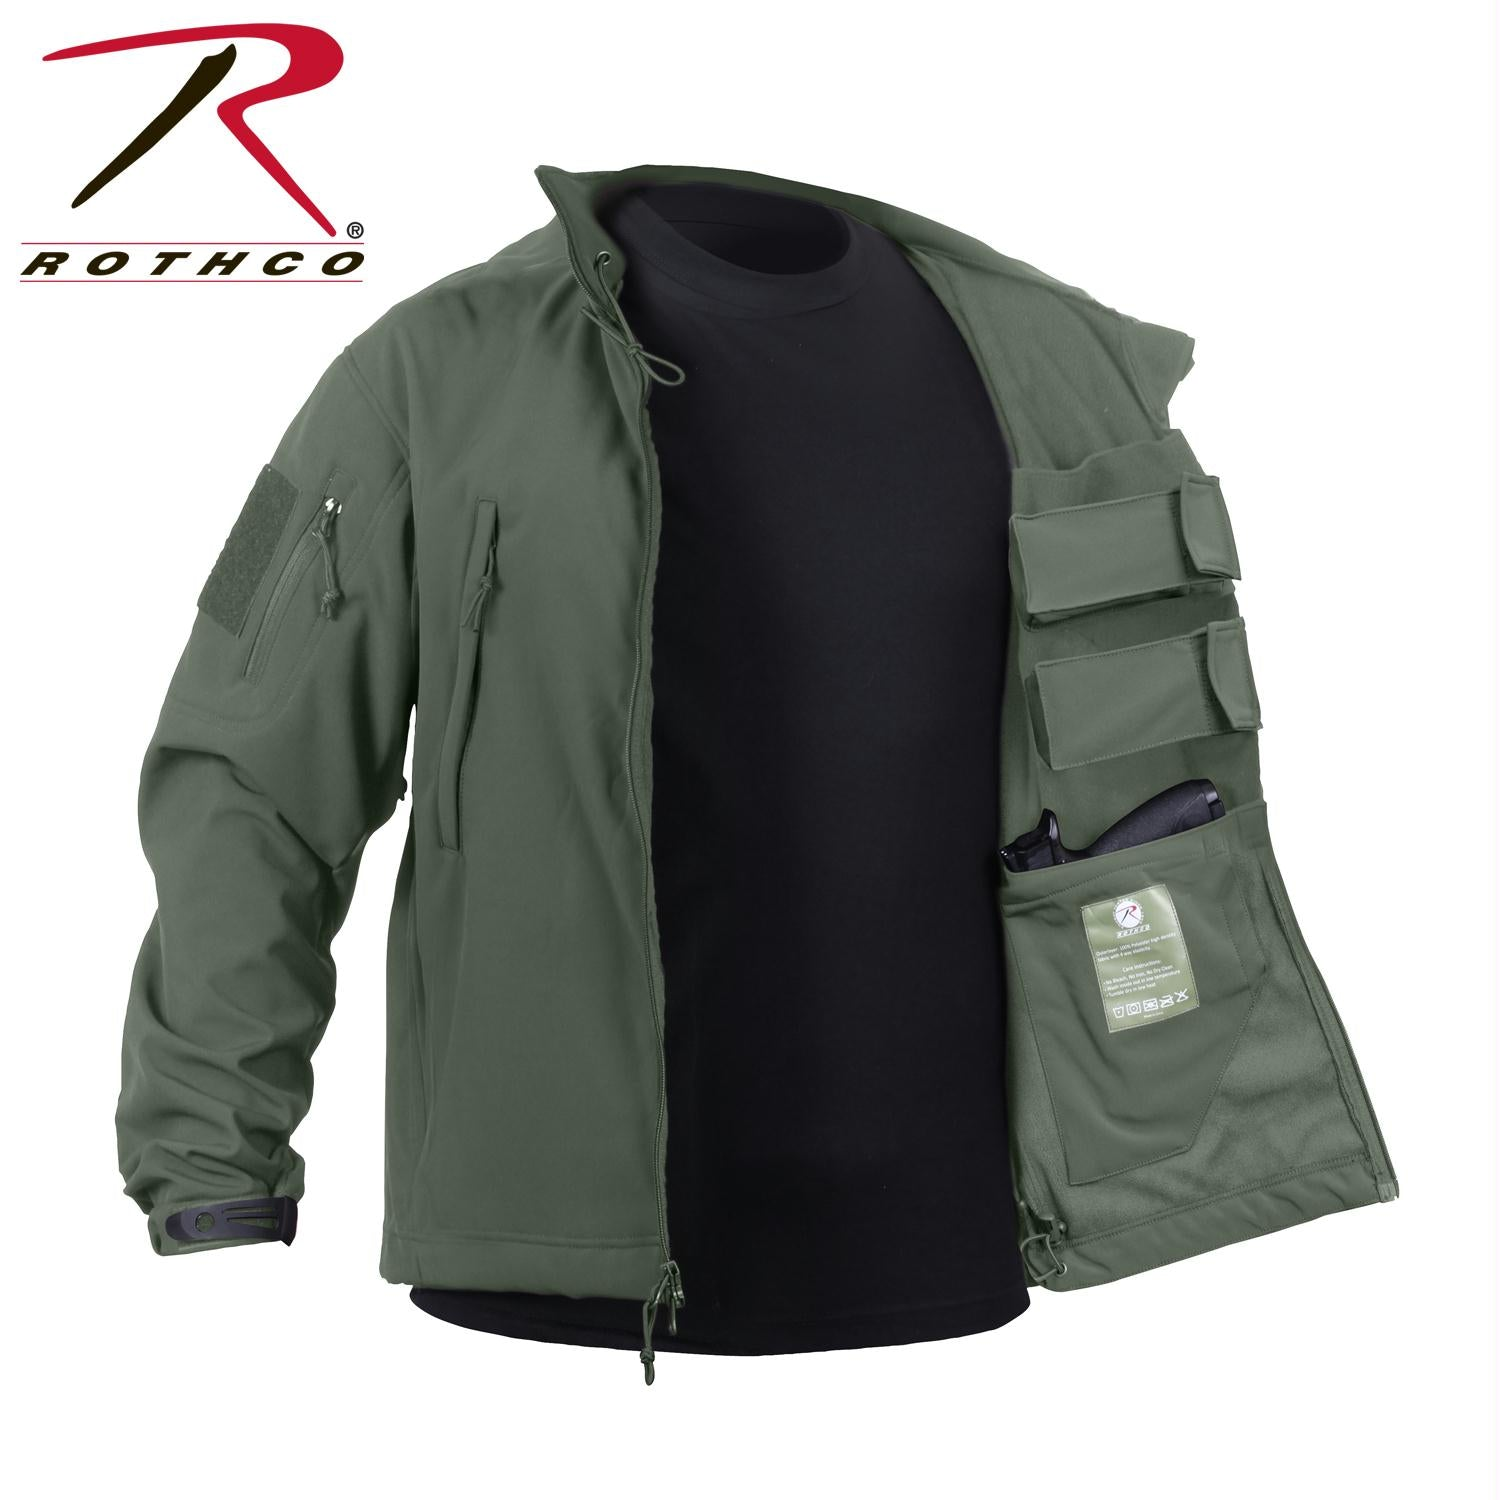 Rothco Concealed Carry Soft Shell Jacket - Olive Drab / M